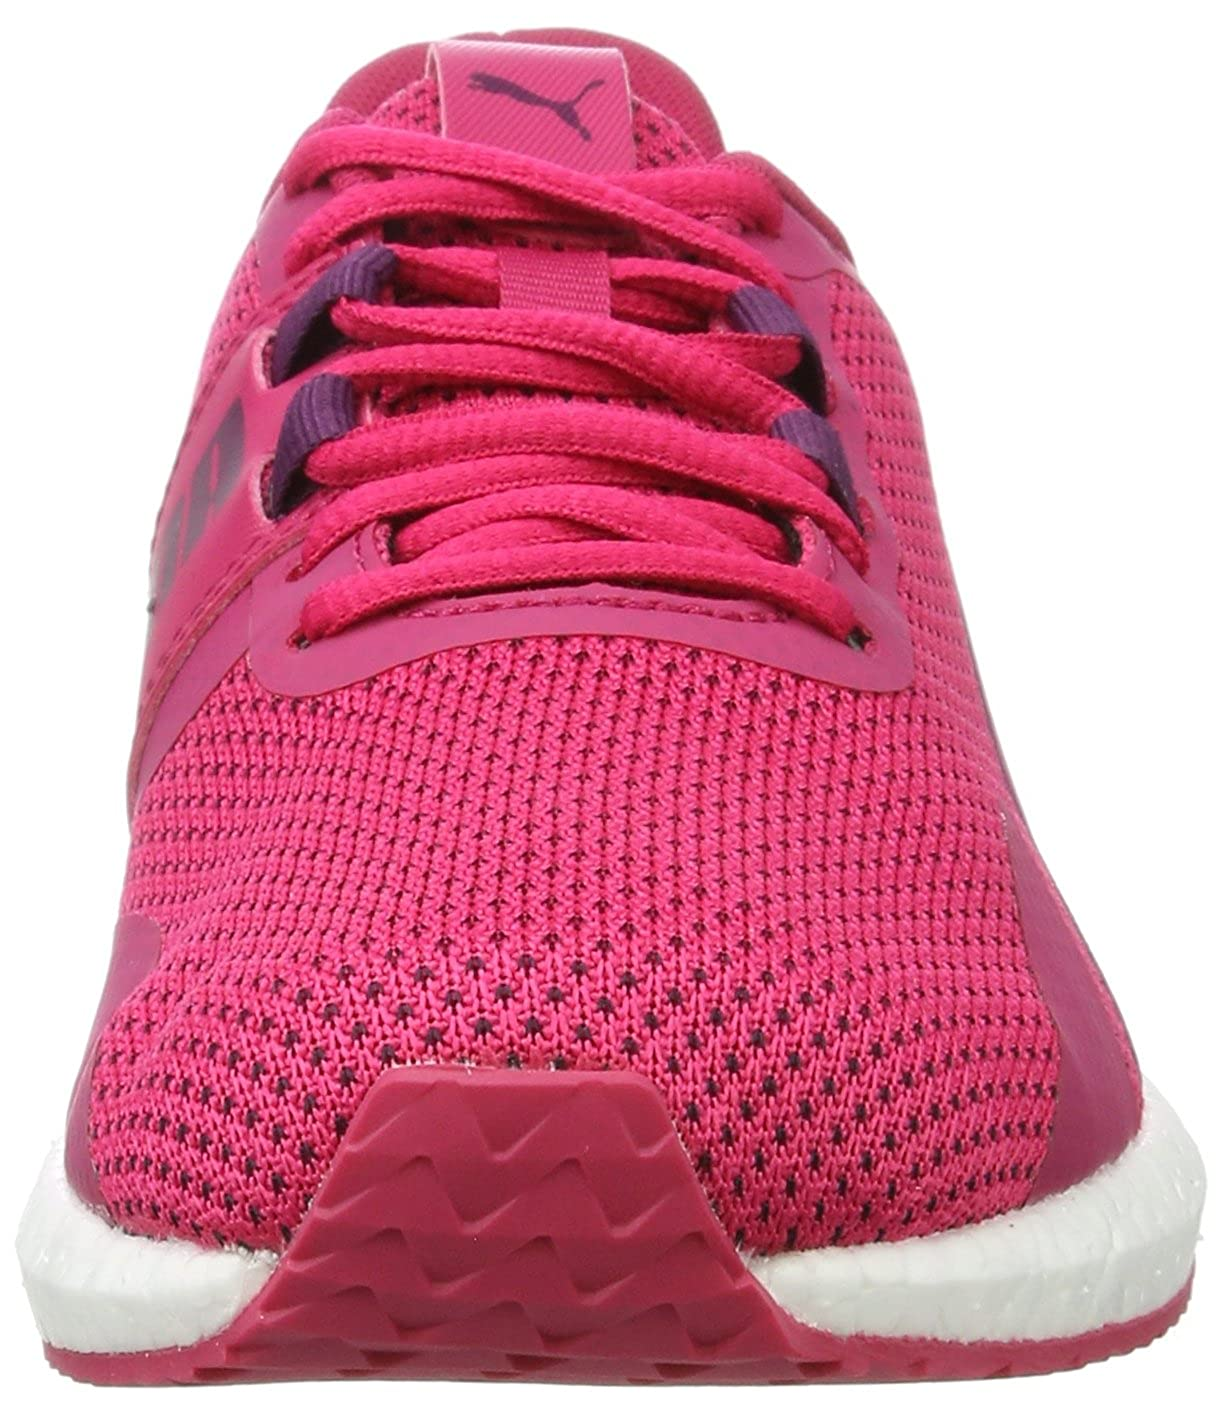 Puma Damen Mega Outdoor NRGY Turbo Outdoor Mega Fitnessschuhe Pink (Love Potion-dark Purple) 390dcf